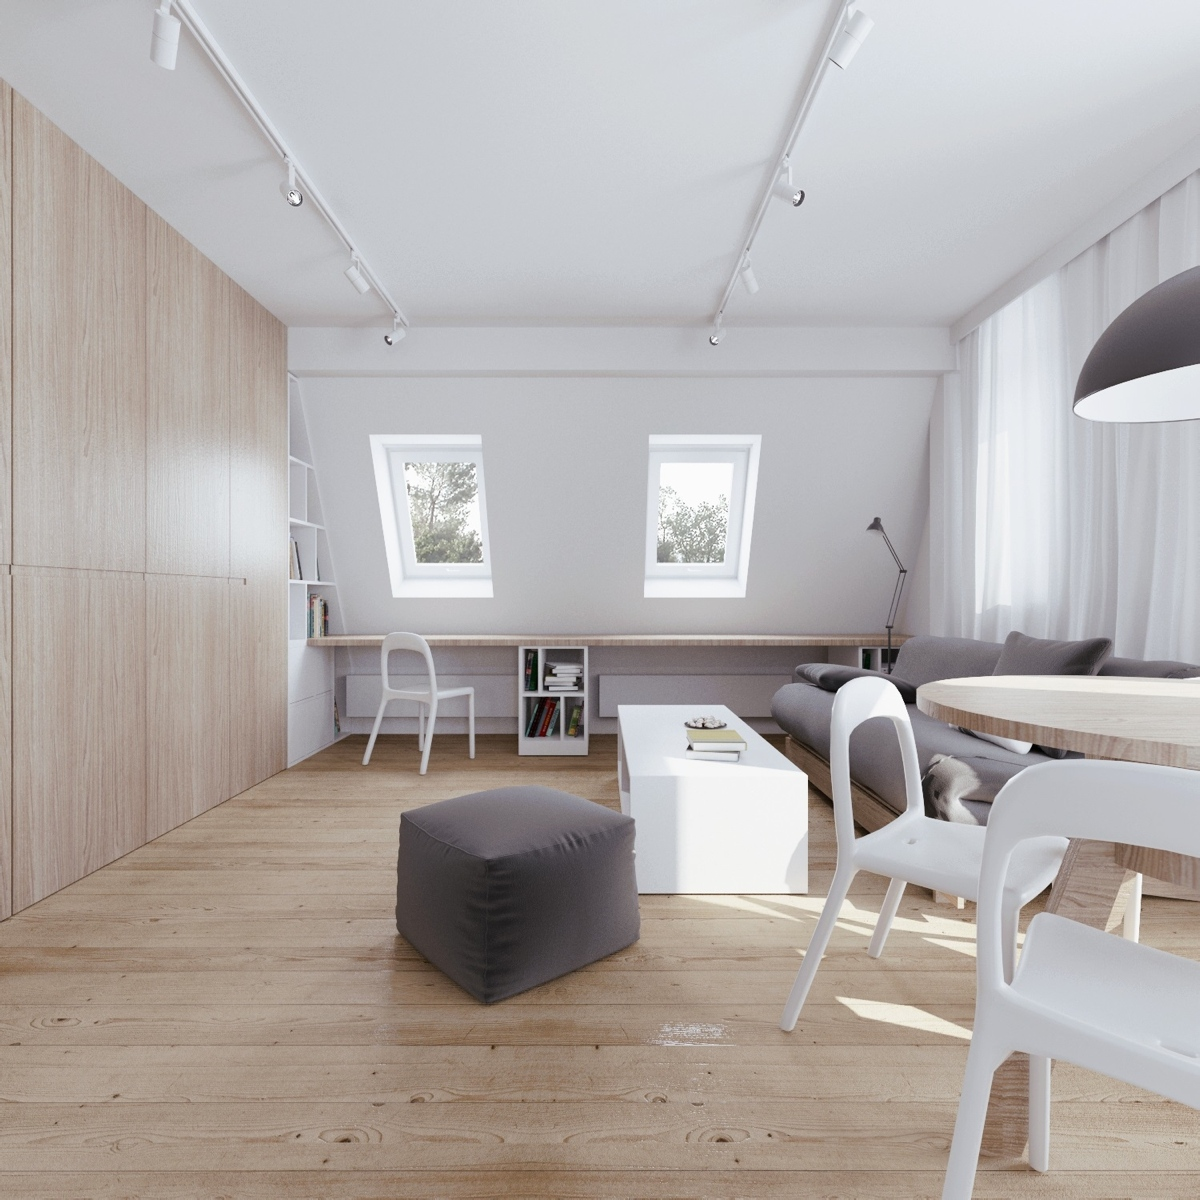 Attic Apartment With Clever Design Features Includes Floor Plans